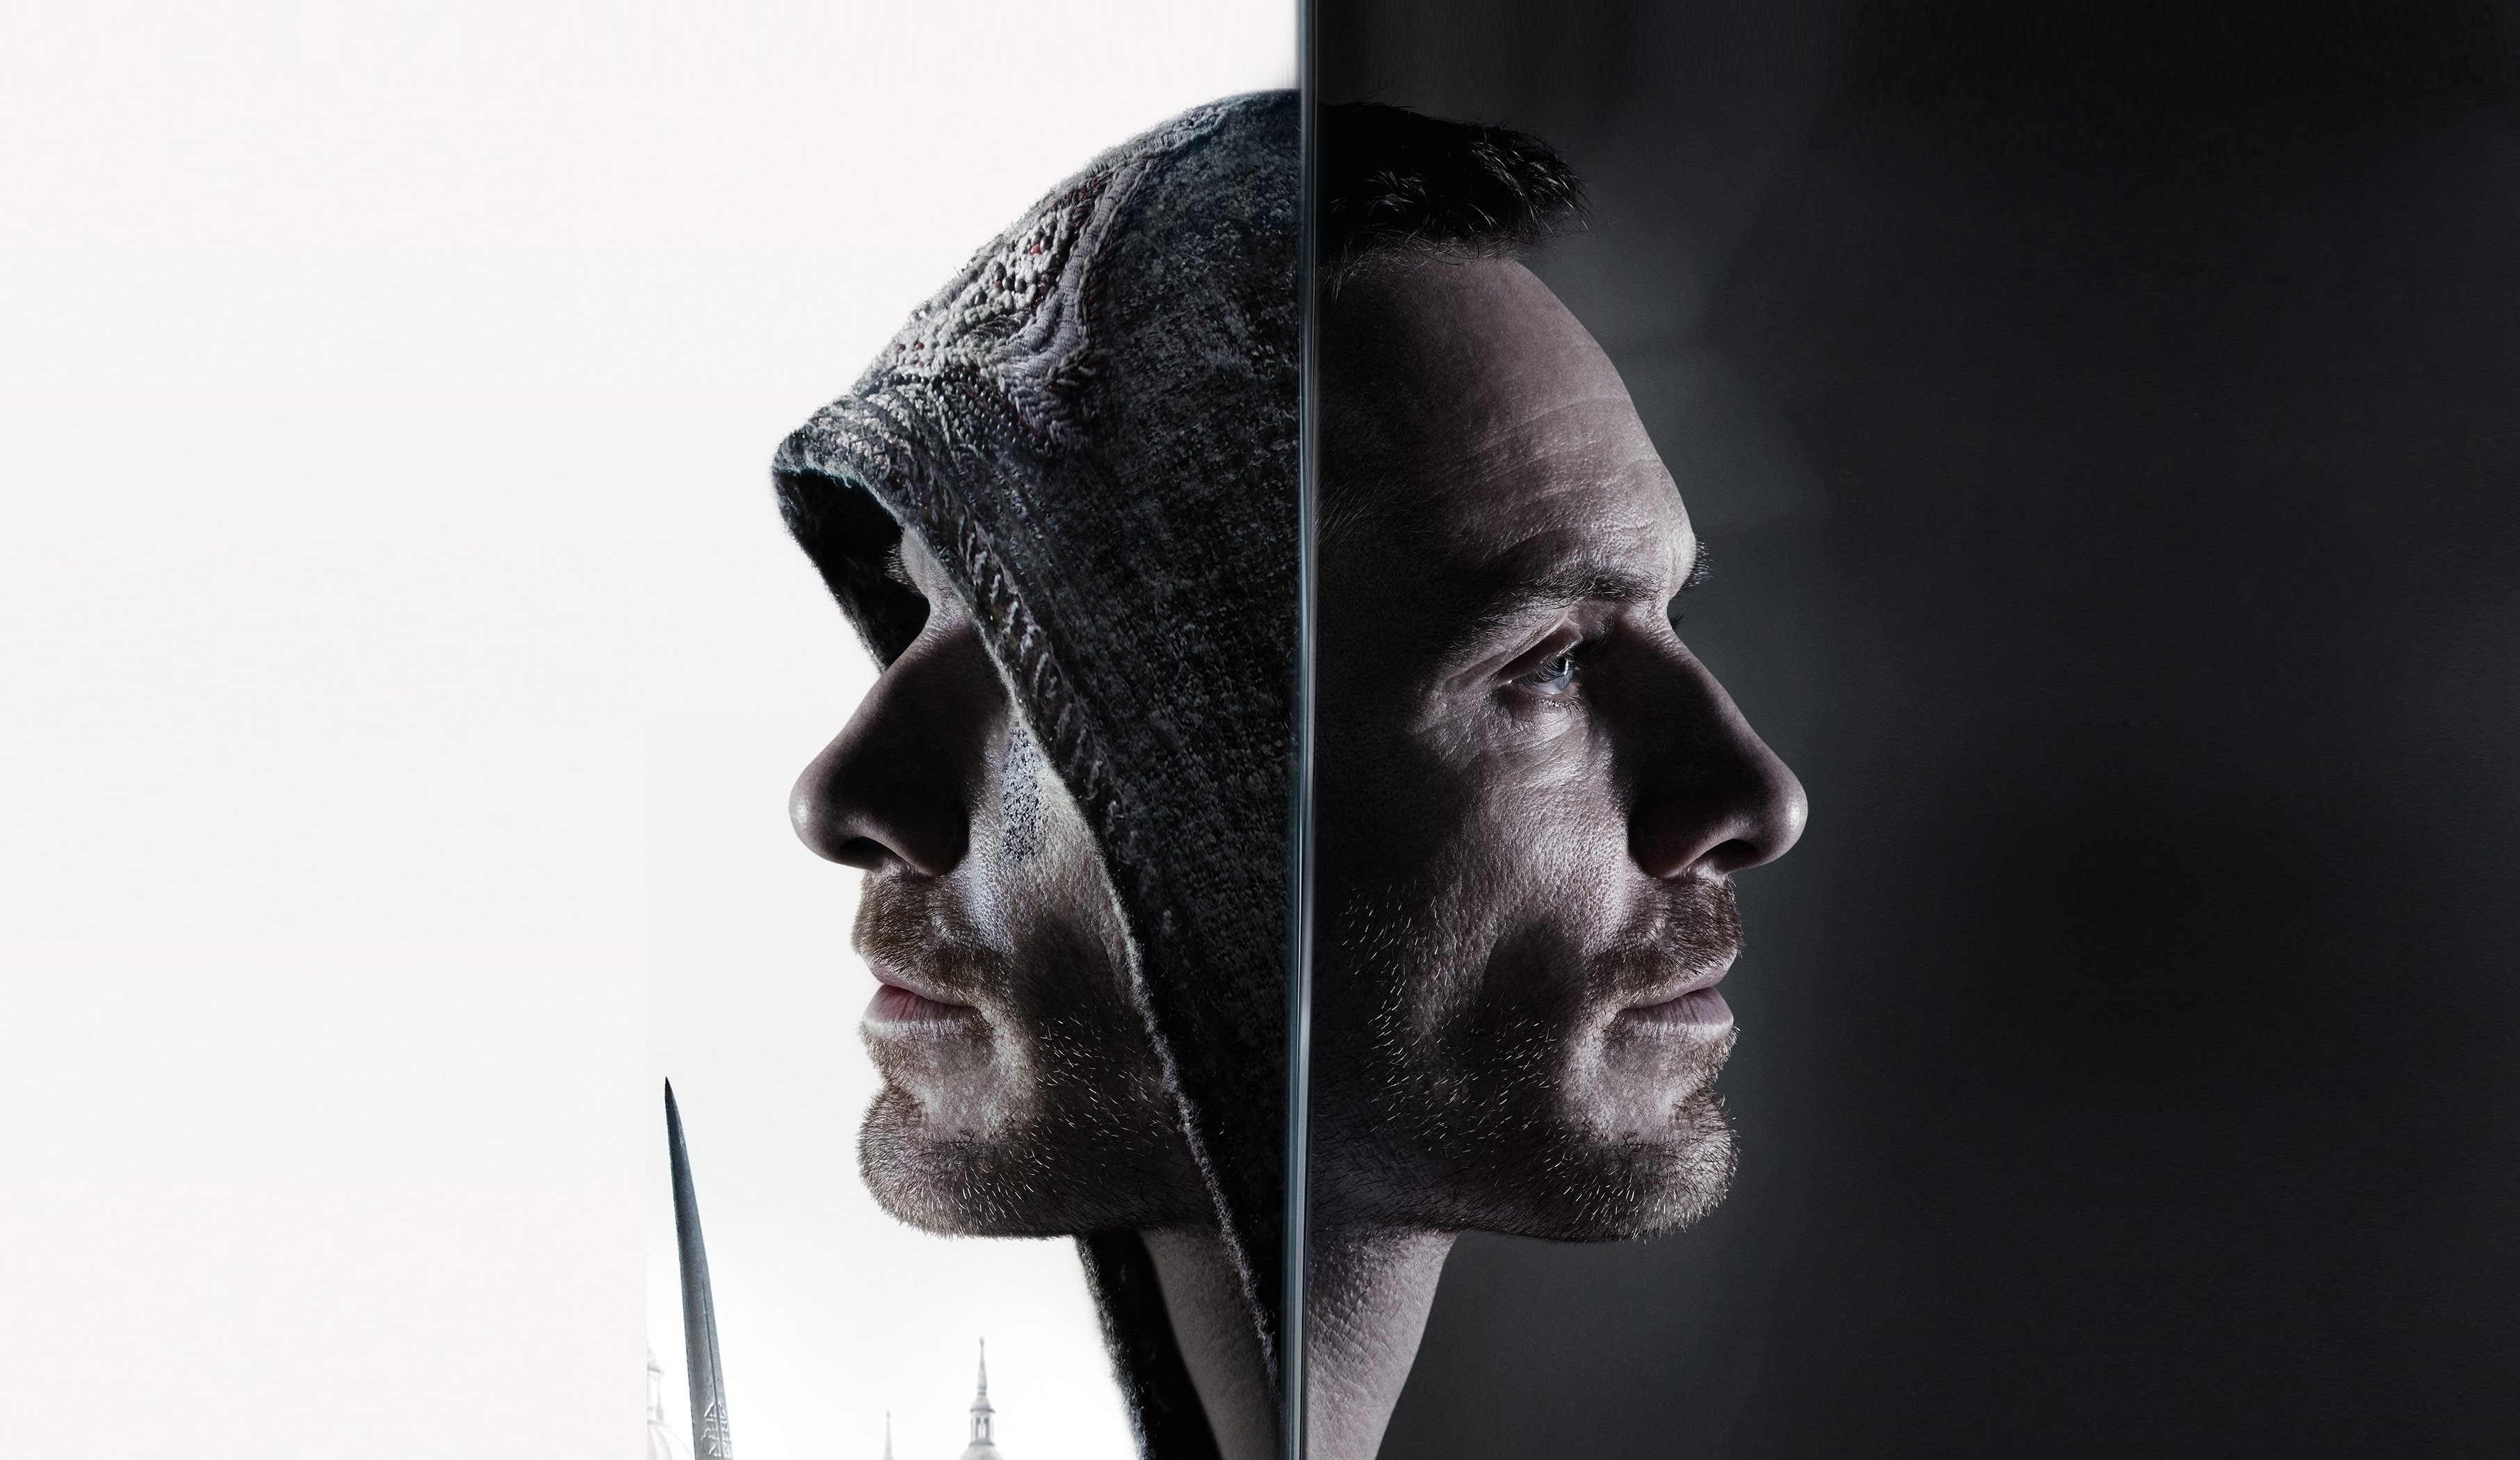 assassins creed movie hd hd movies 4k wallpapers images